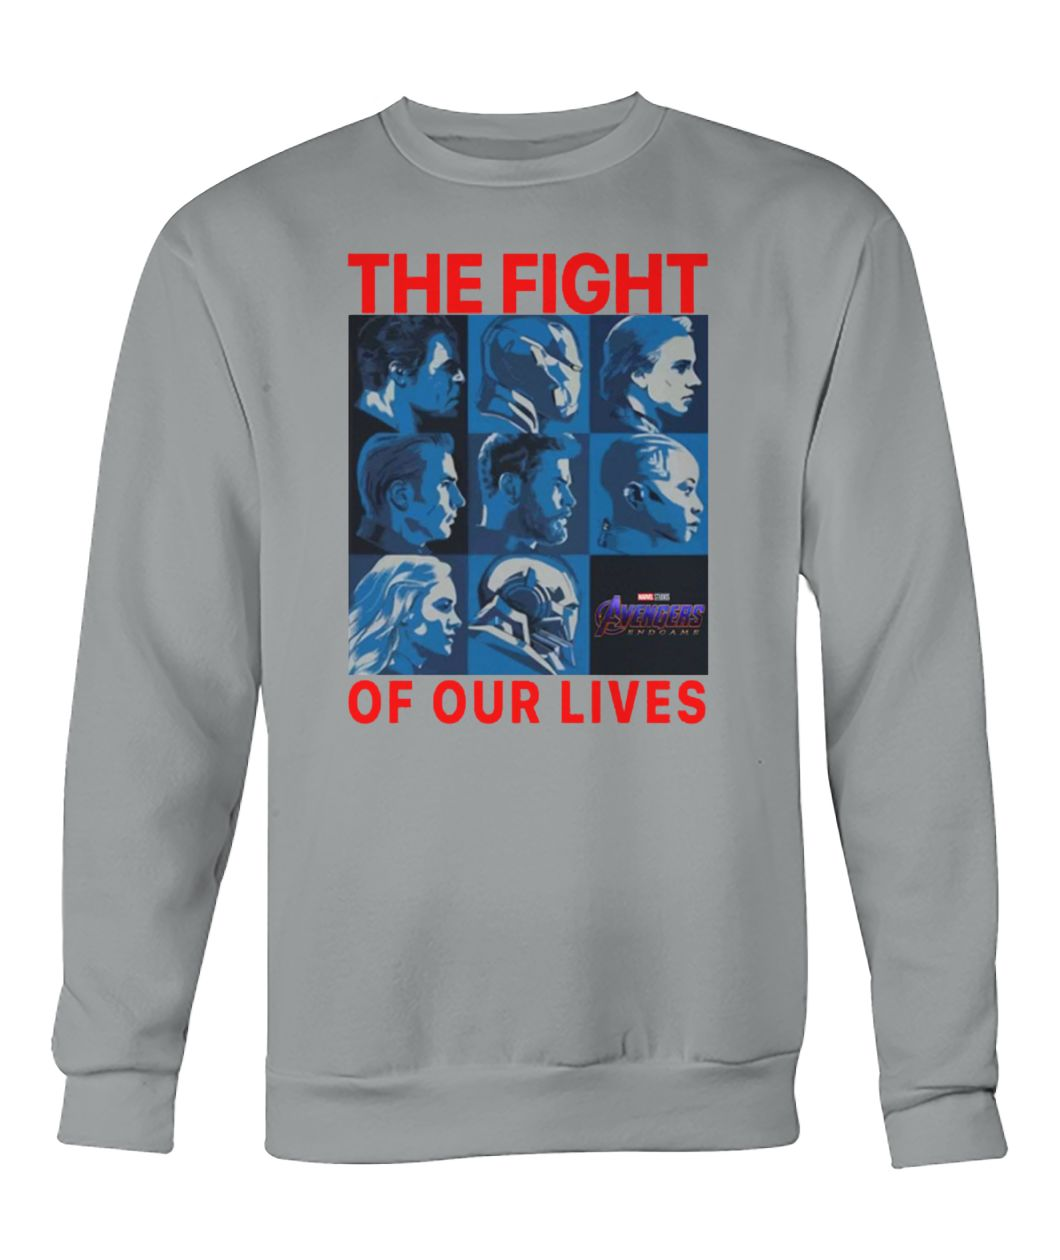 Avengers endgame the fight for our lives crew neck sweatshirt